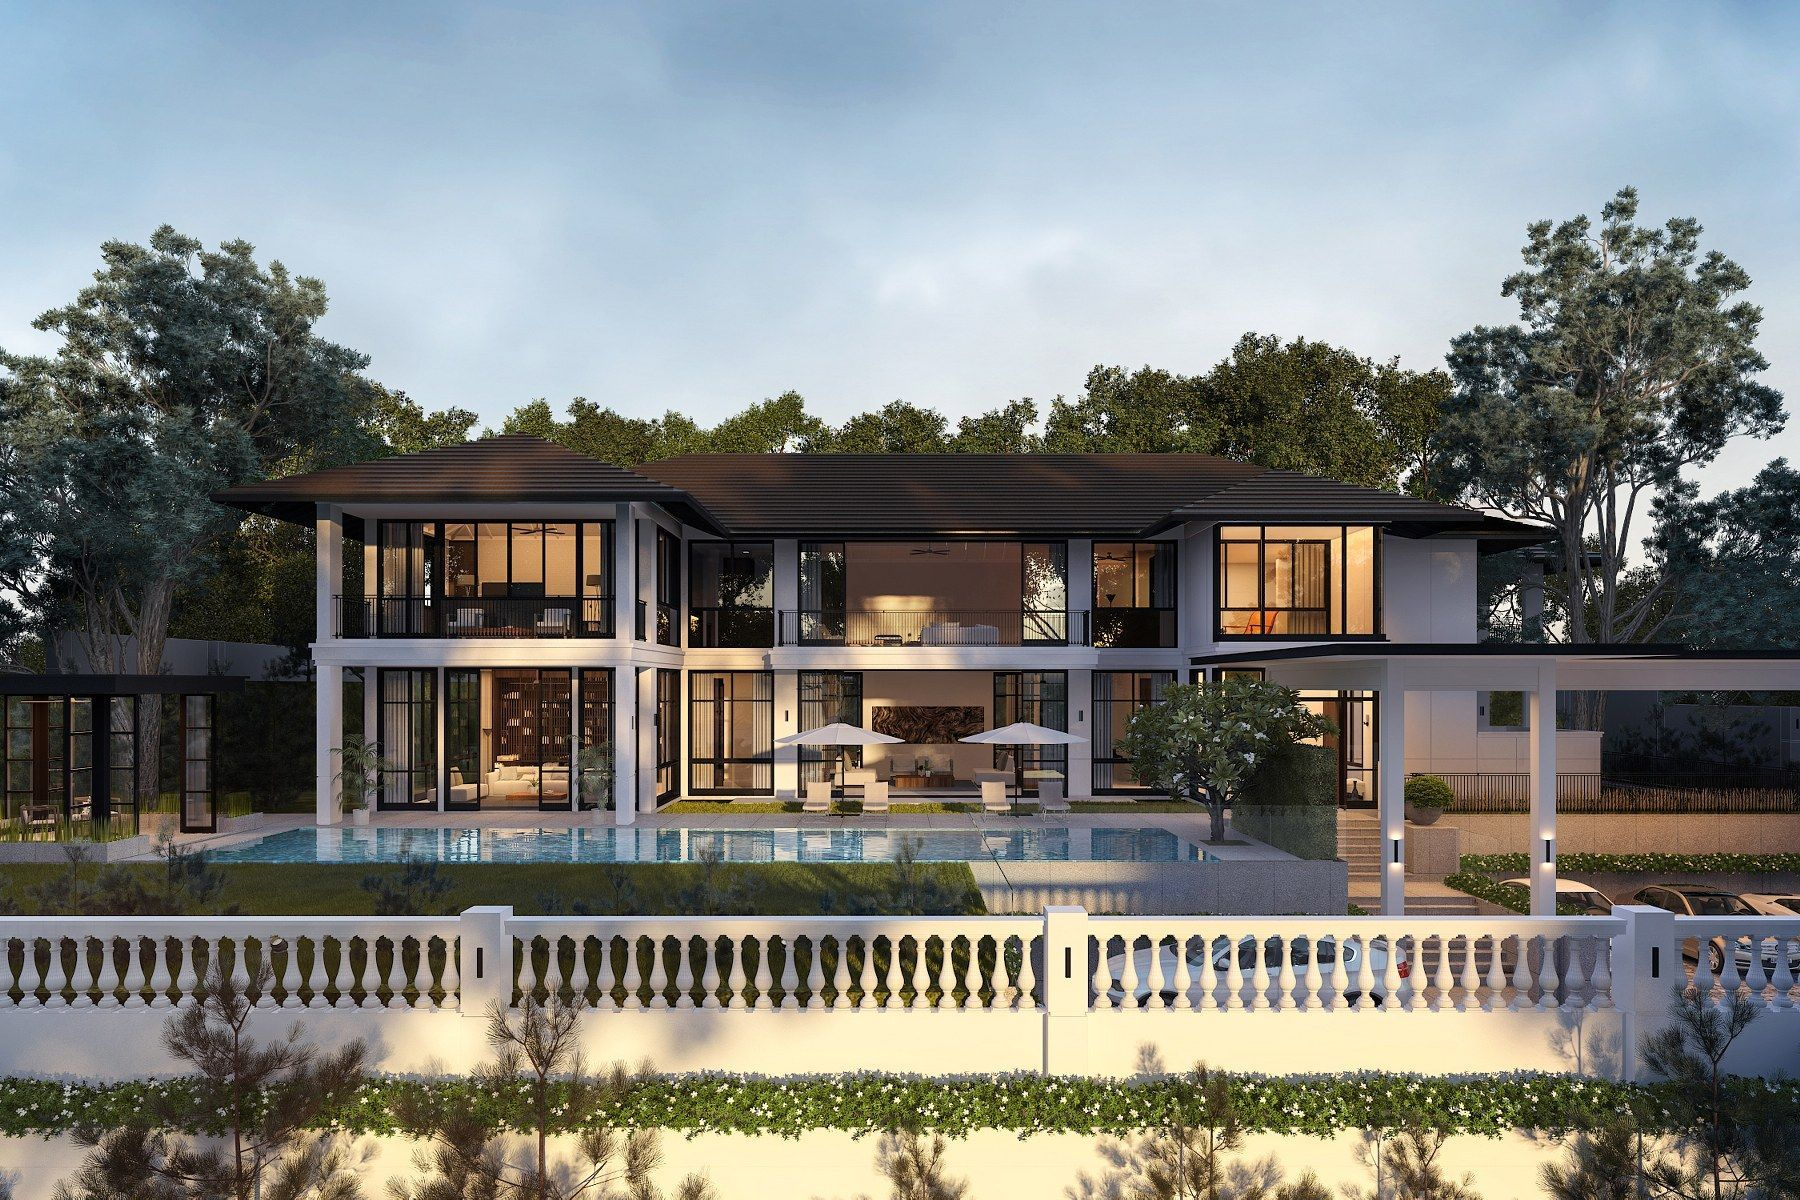 Single Family Homes for Sale at Good Class Bungalow Singapore, Cities In Singapore Singapore